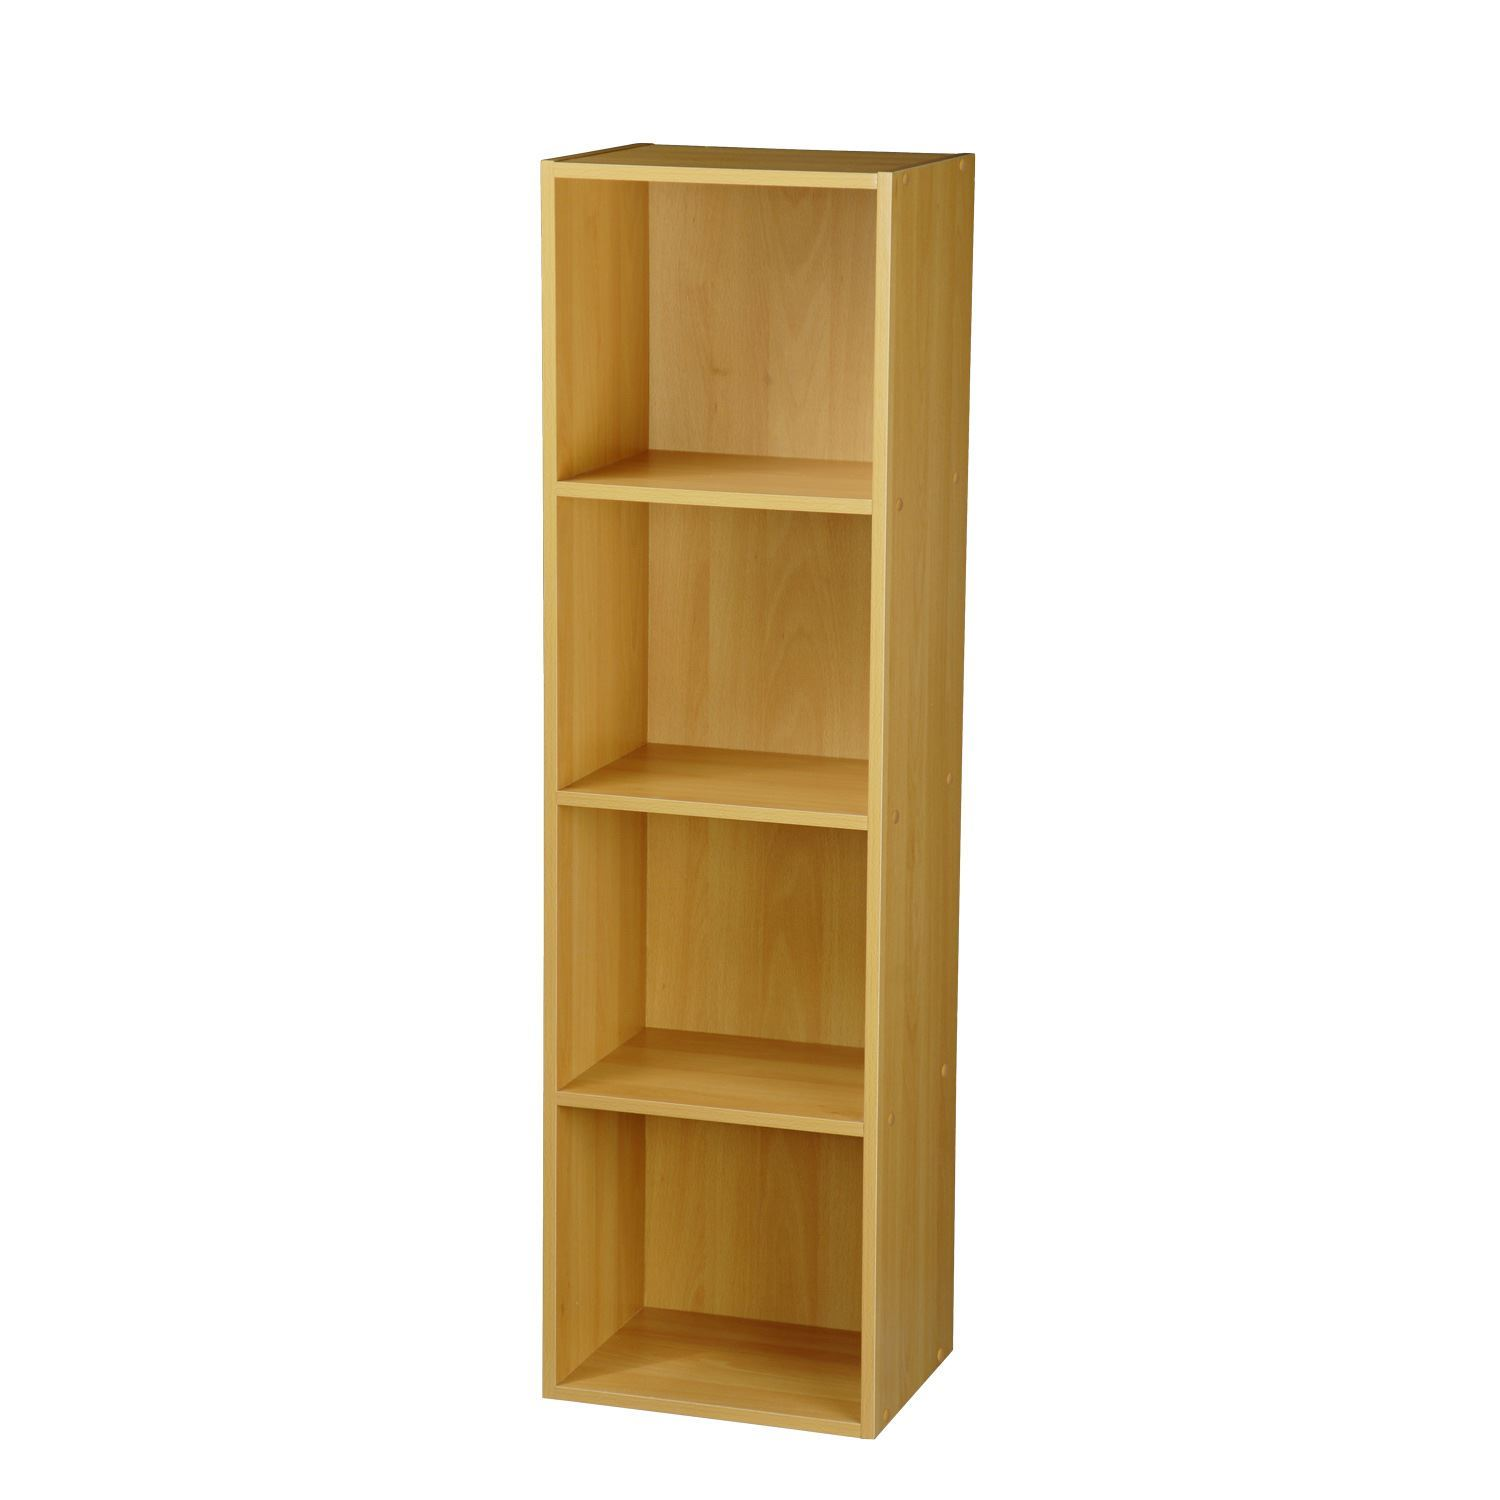 Very Impressive portraiture of  TIER WOODEN BOOKCASE SHELVING DISPLAY STORAGE WOOD SHELVES UNIT SHELF with #814B0F color and 1500x1500 pixels